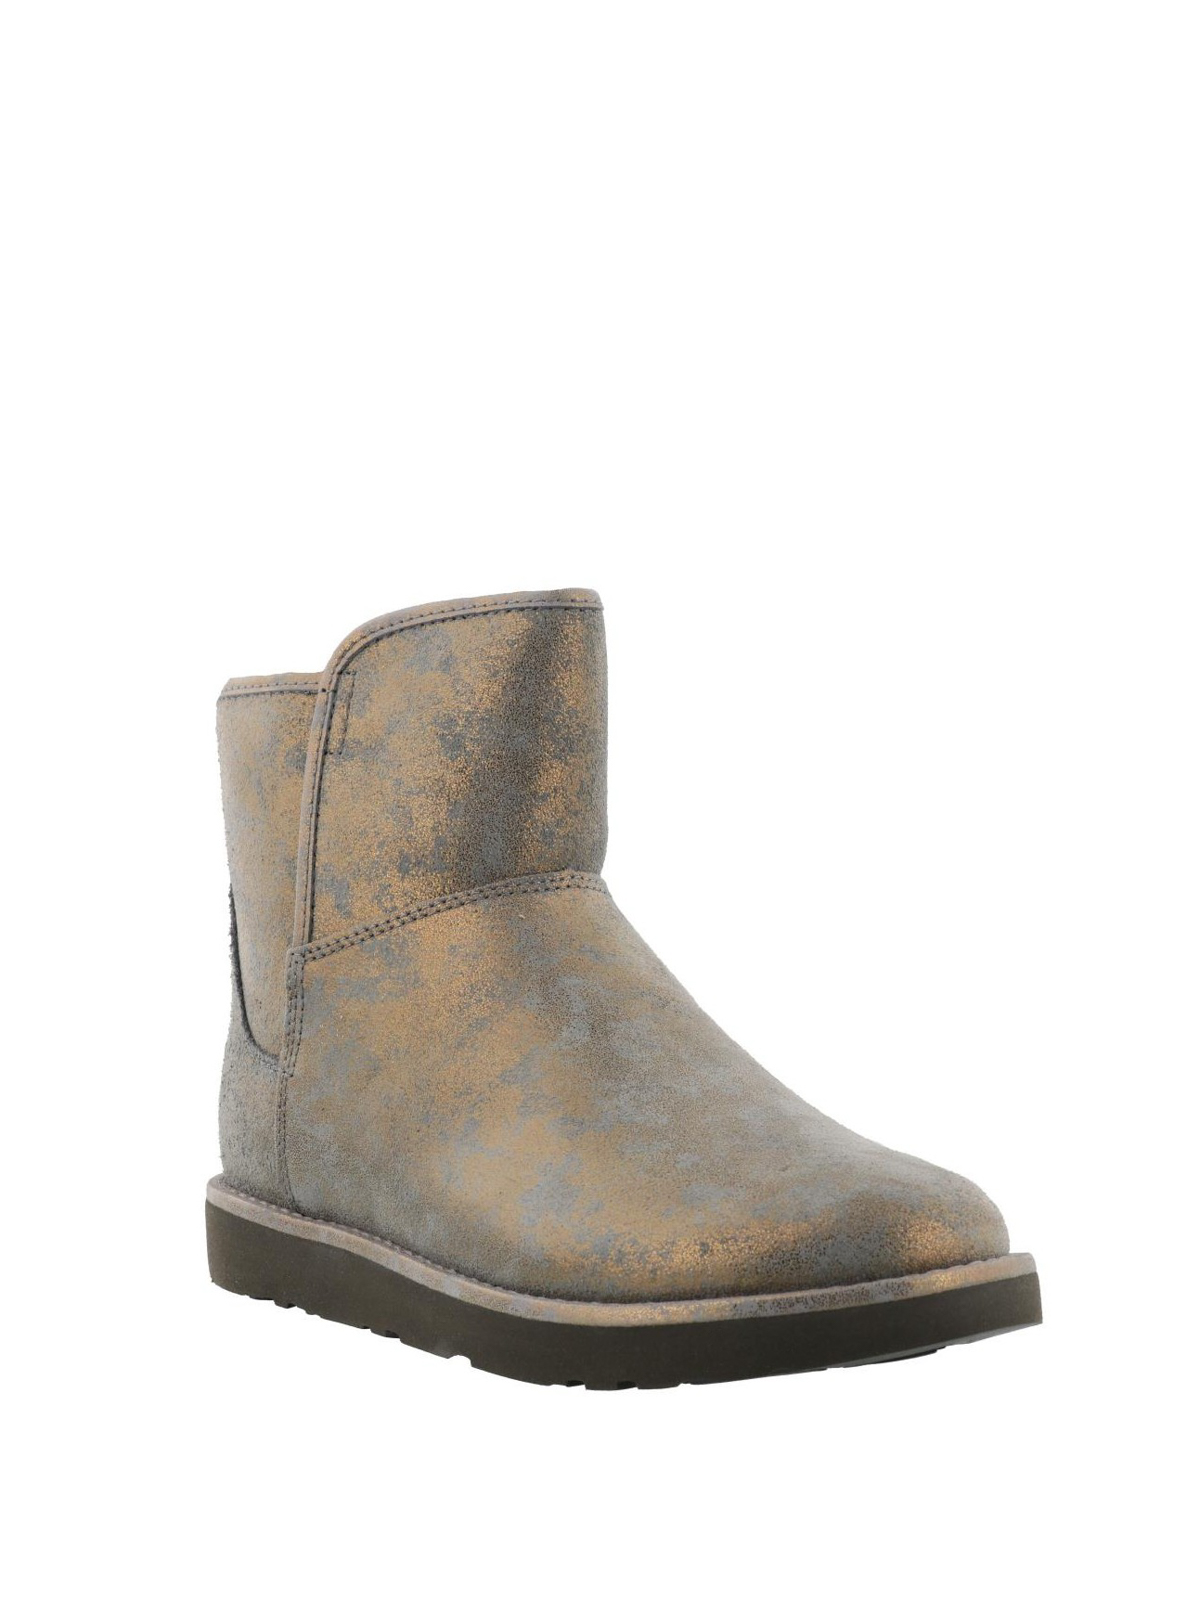 f02b70e710e Ugg - Abree Mini Stardust ankle boots - ankle boots - 1094675 GUNMETAL